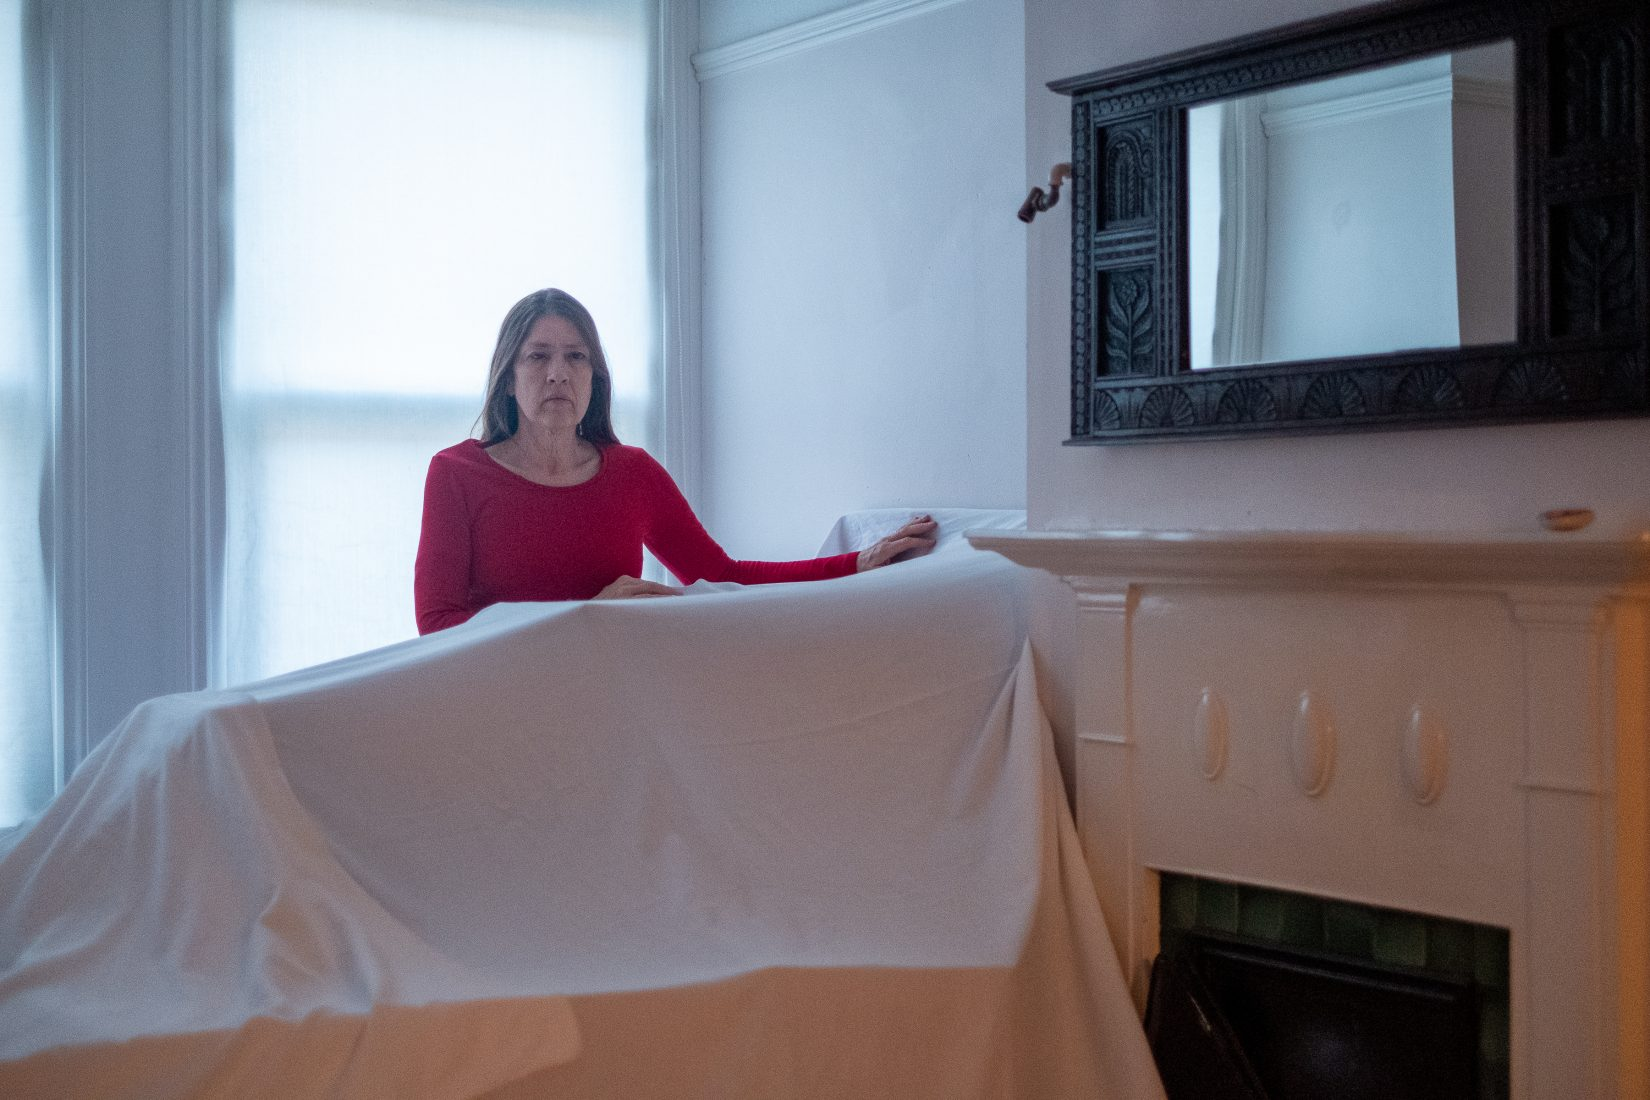 A woman in a red top stands behind furniture covered by a white sheet in a bright room